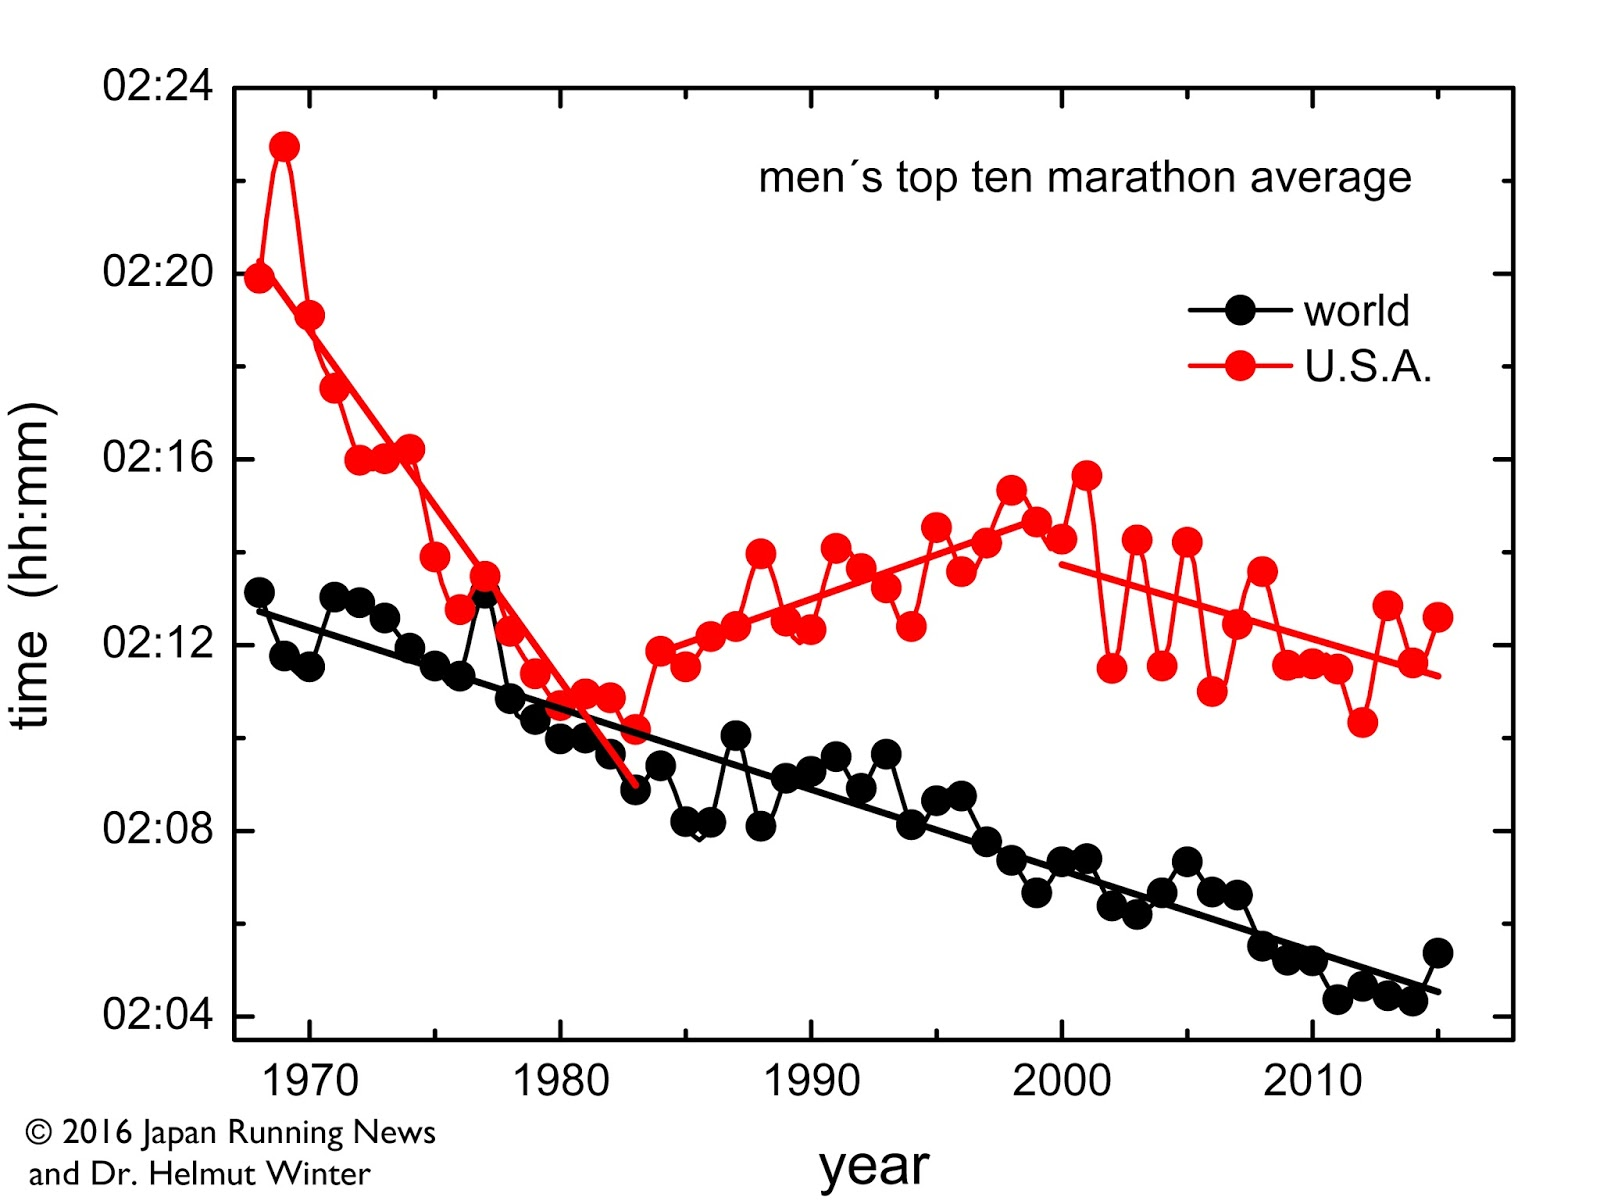 tokumoto kasumi Looking at the average of the ten fastest marathons per year by American  men, for the 16 years between the 1968 Mexico City Olympics and the 1984  Los ...